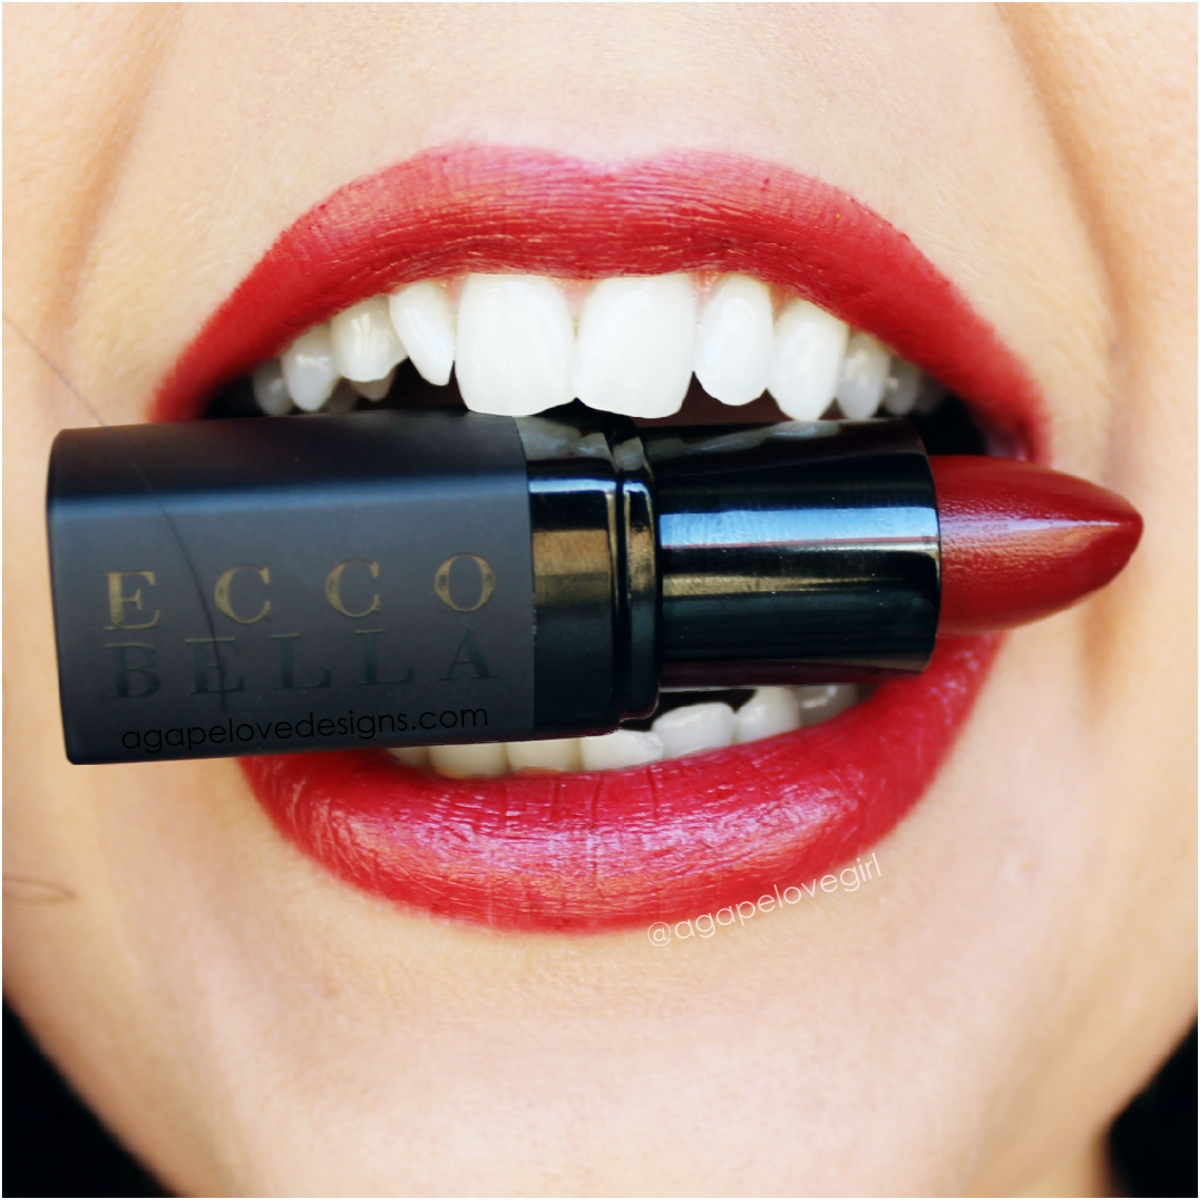 Ecco Bella Offers Lipglosses that are Good for You (Makeup